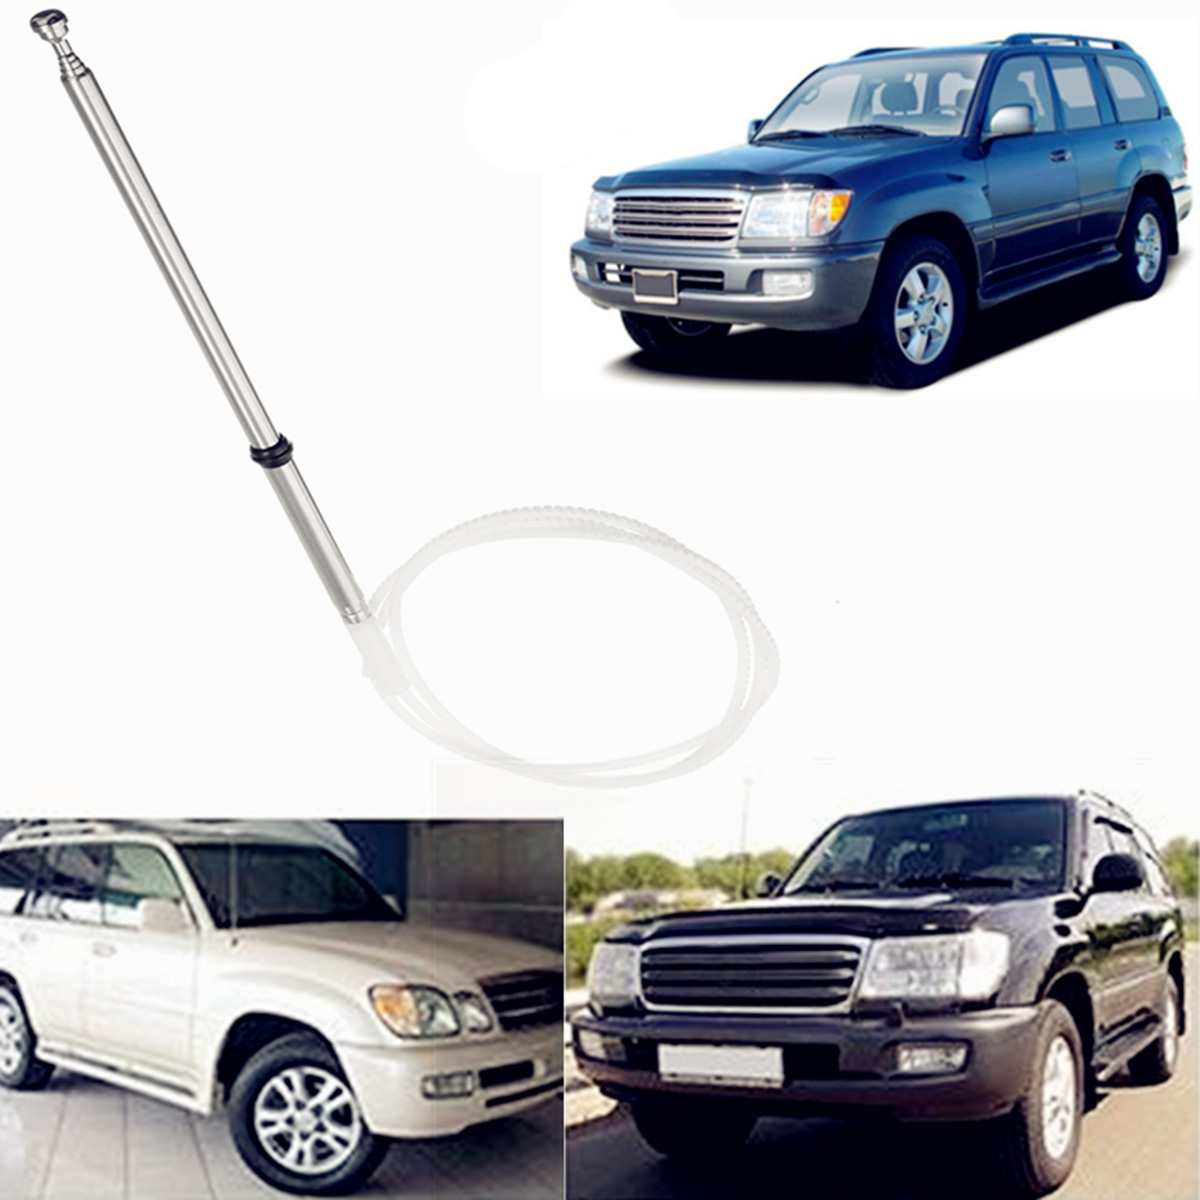 New Replacement AM FM Antenna Aerial Power Antenna Mast For <font><b>Toyota</b></font> Land Cruiser 1998-2007 86337-60151 image